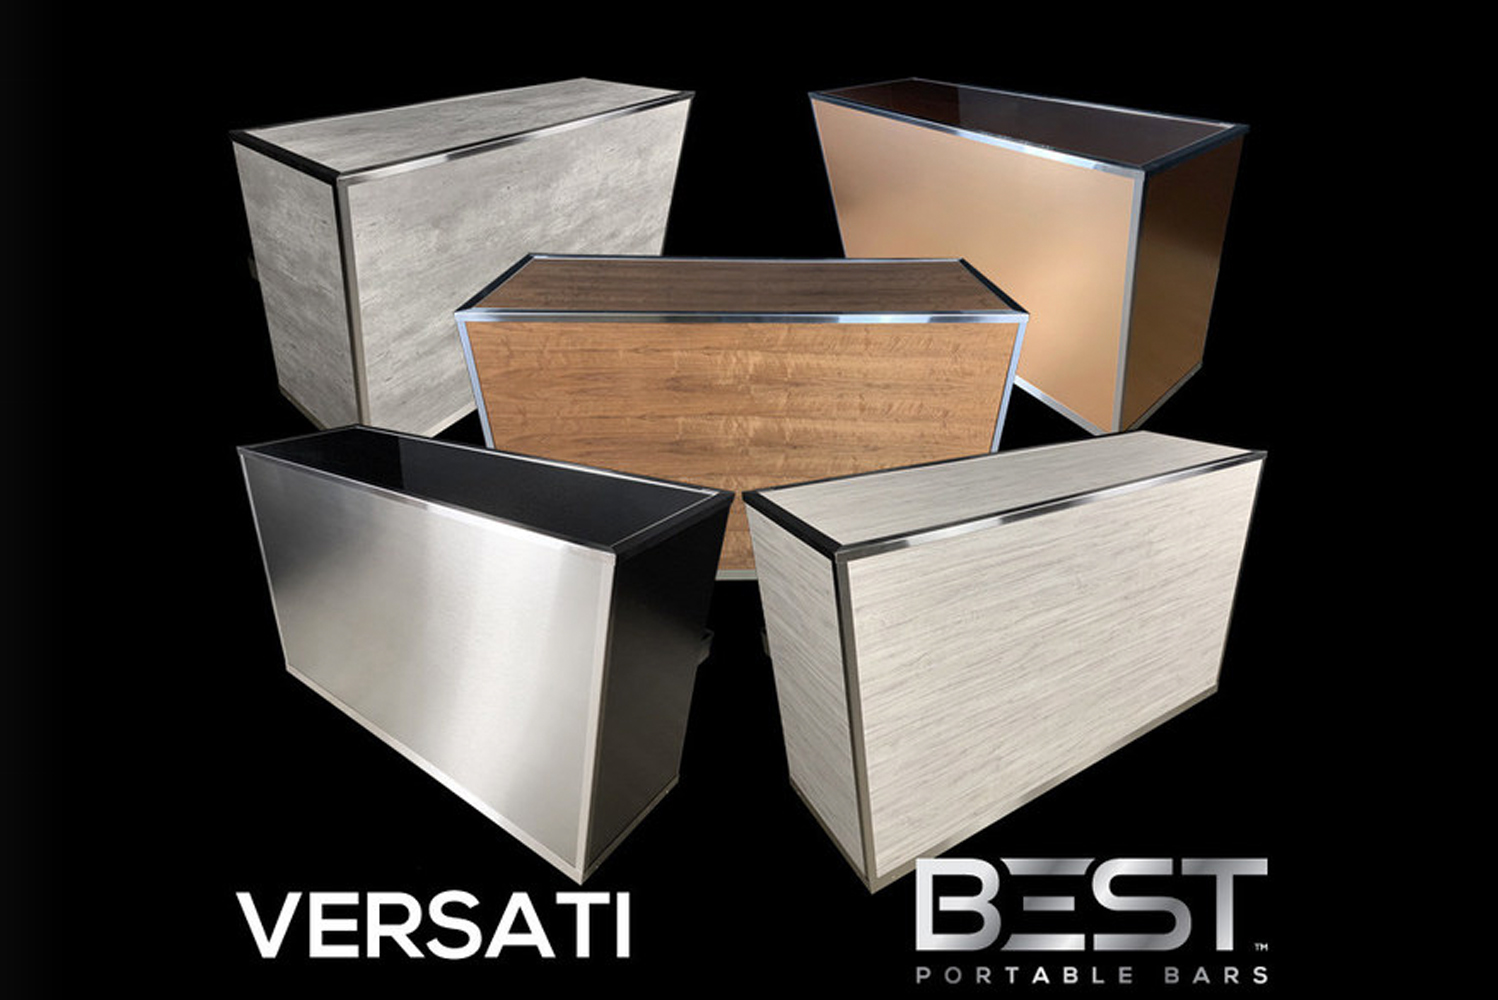 Montreal-based Best Portable Bars released its newest model, the Versati portable bar designed for events, hotels, rental companies or luxury homes.